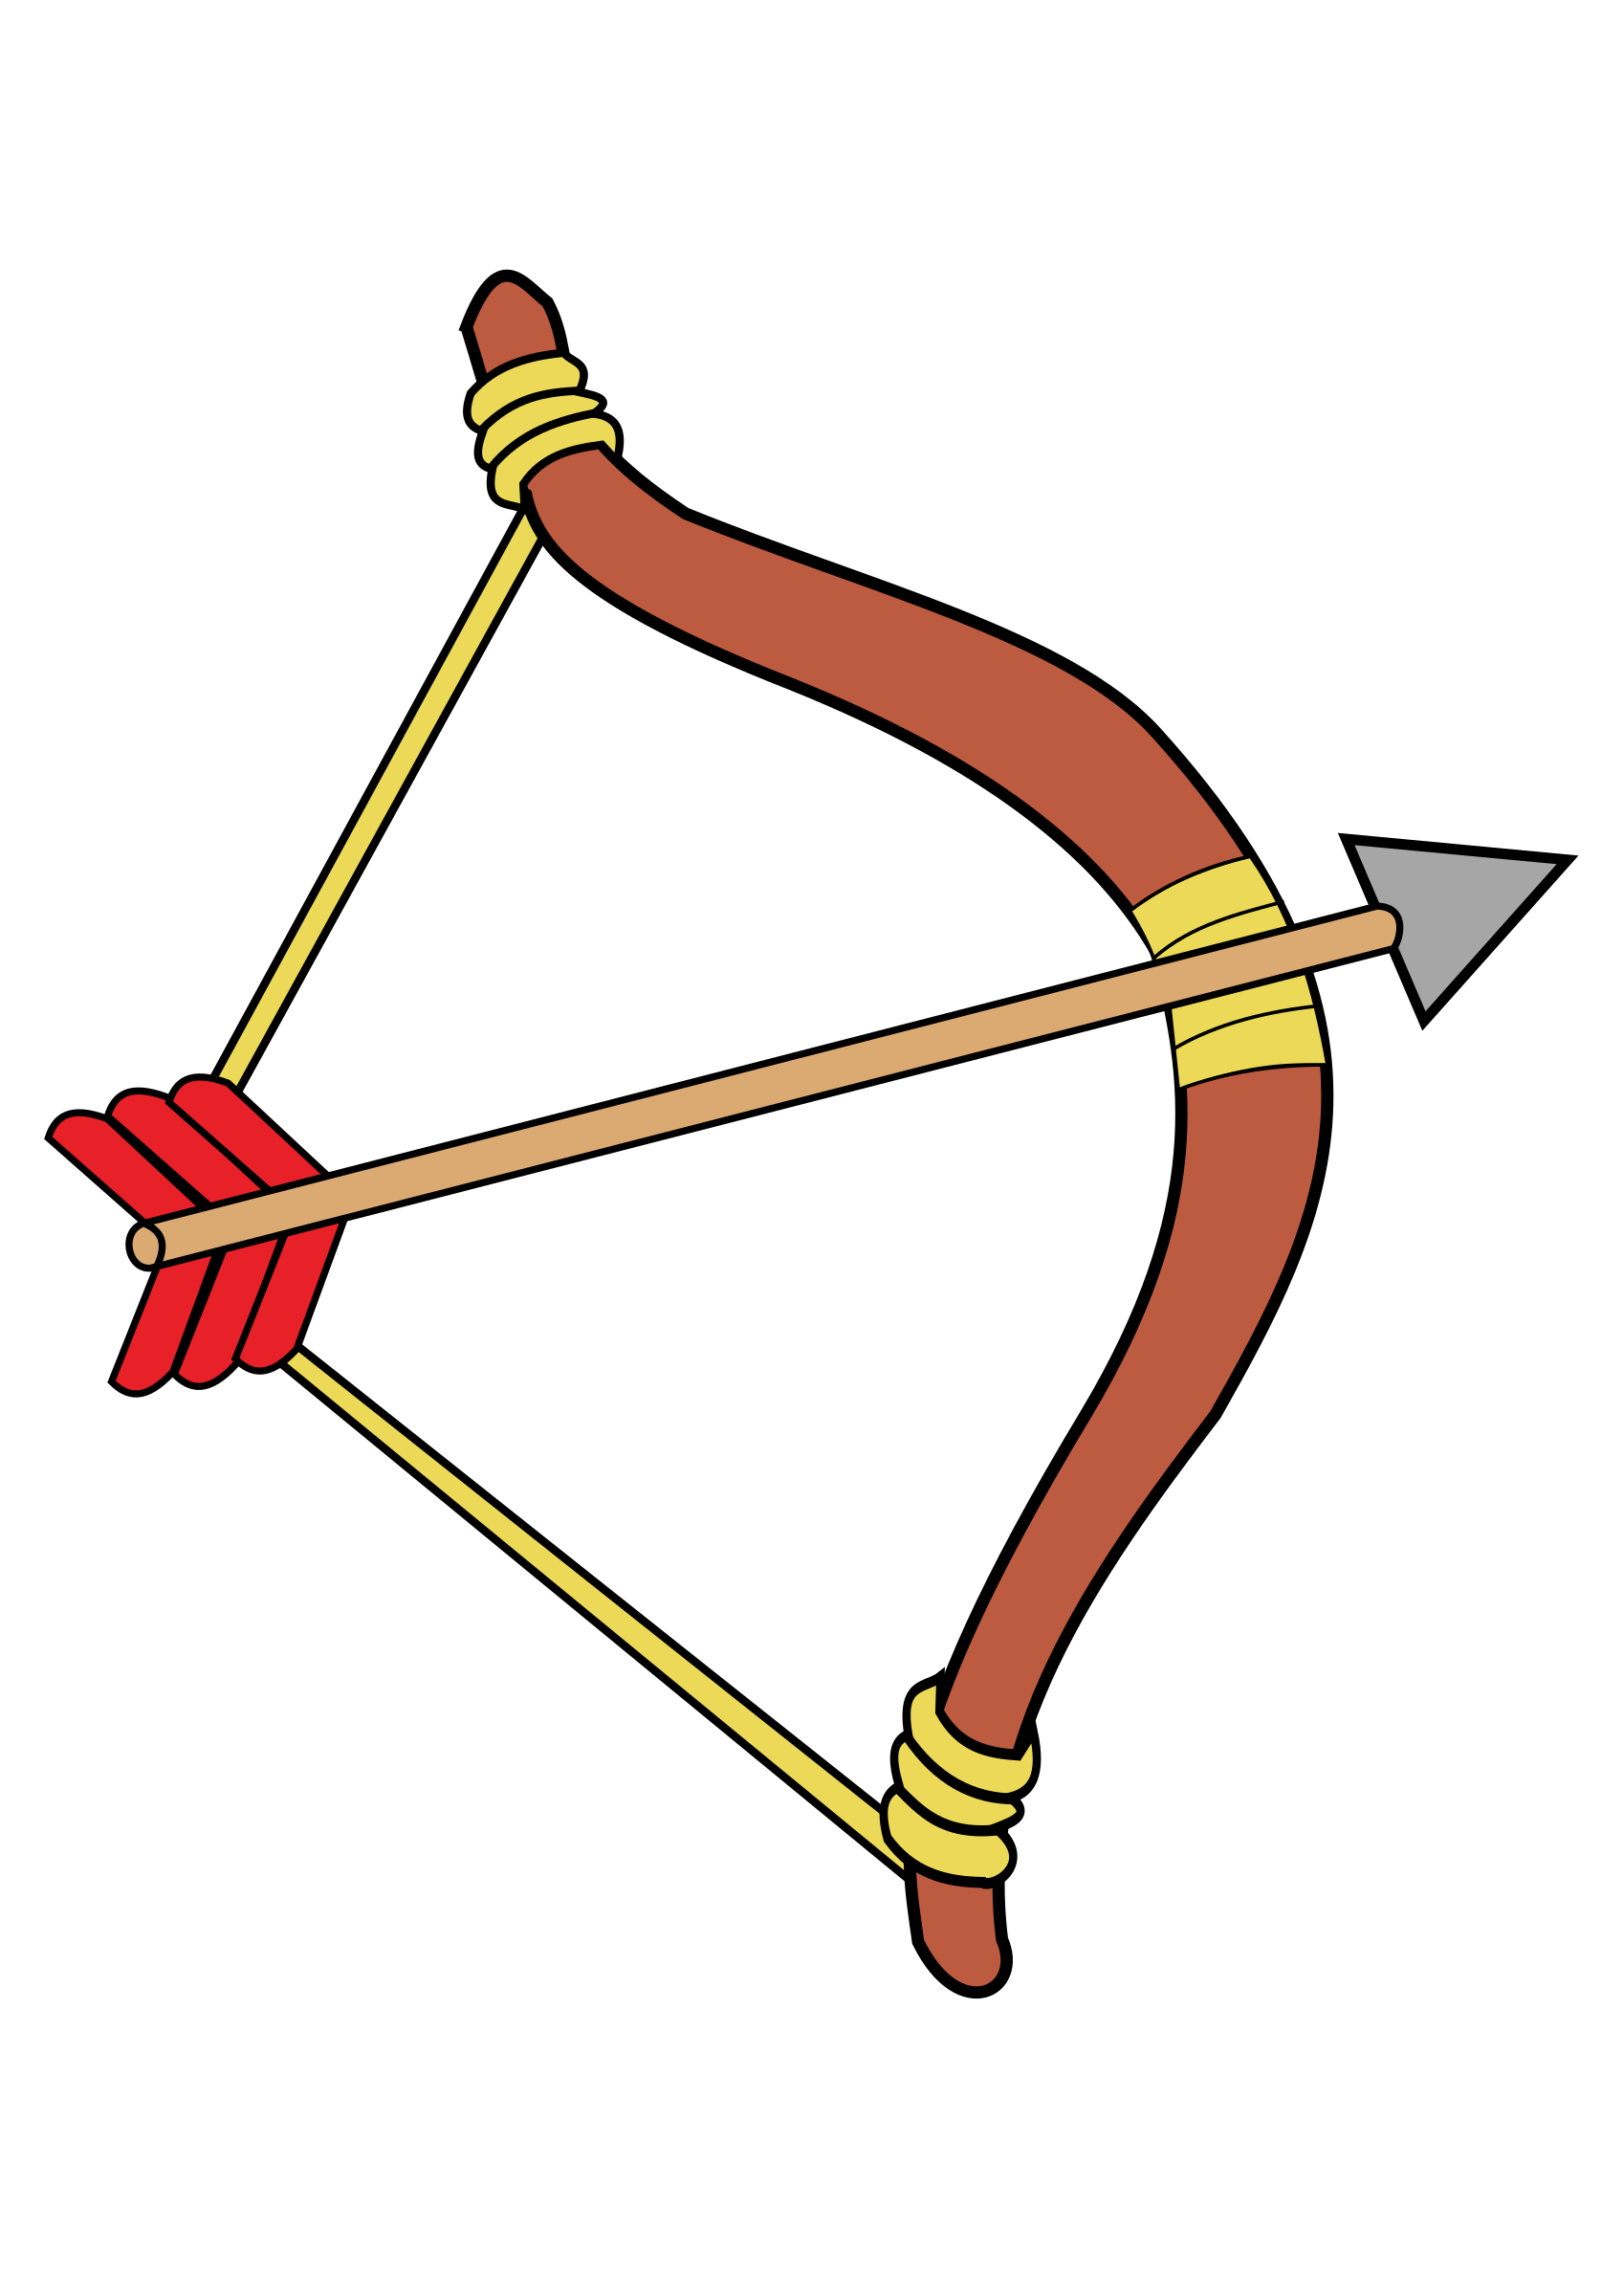 Clipart arrows cartoon. Animated bow and arrow